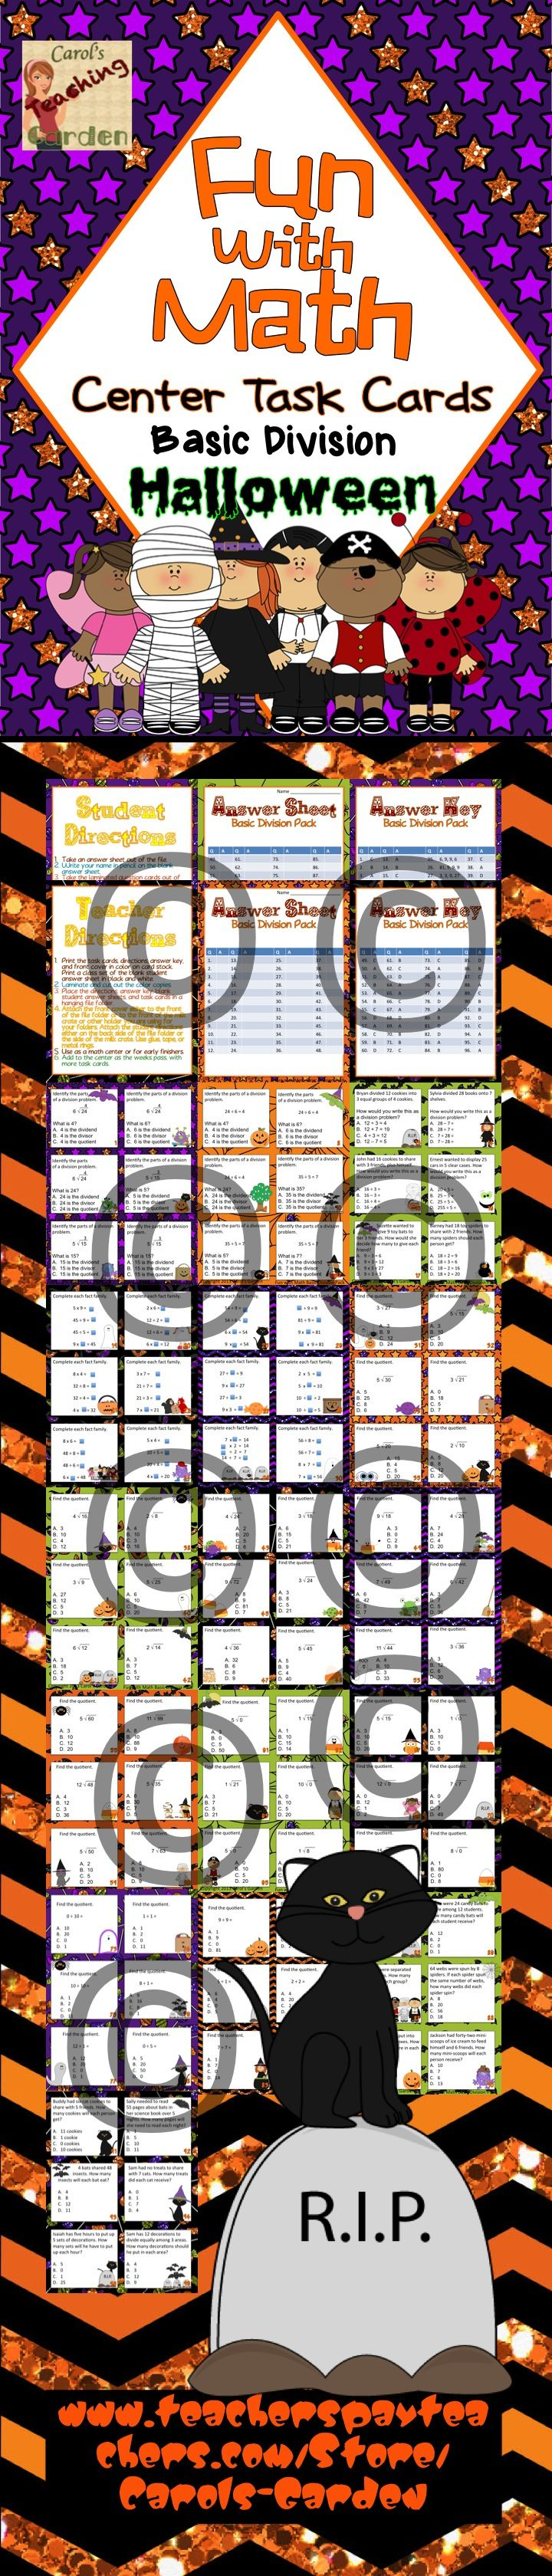 Math center task cards review Common Core Standards for basic division: Differentiate your instruction with these fun Halloween-themed task cards. 96 basic division math task cards for your math center rotations are included with this pack. $